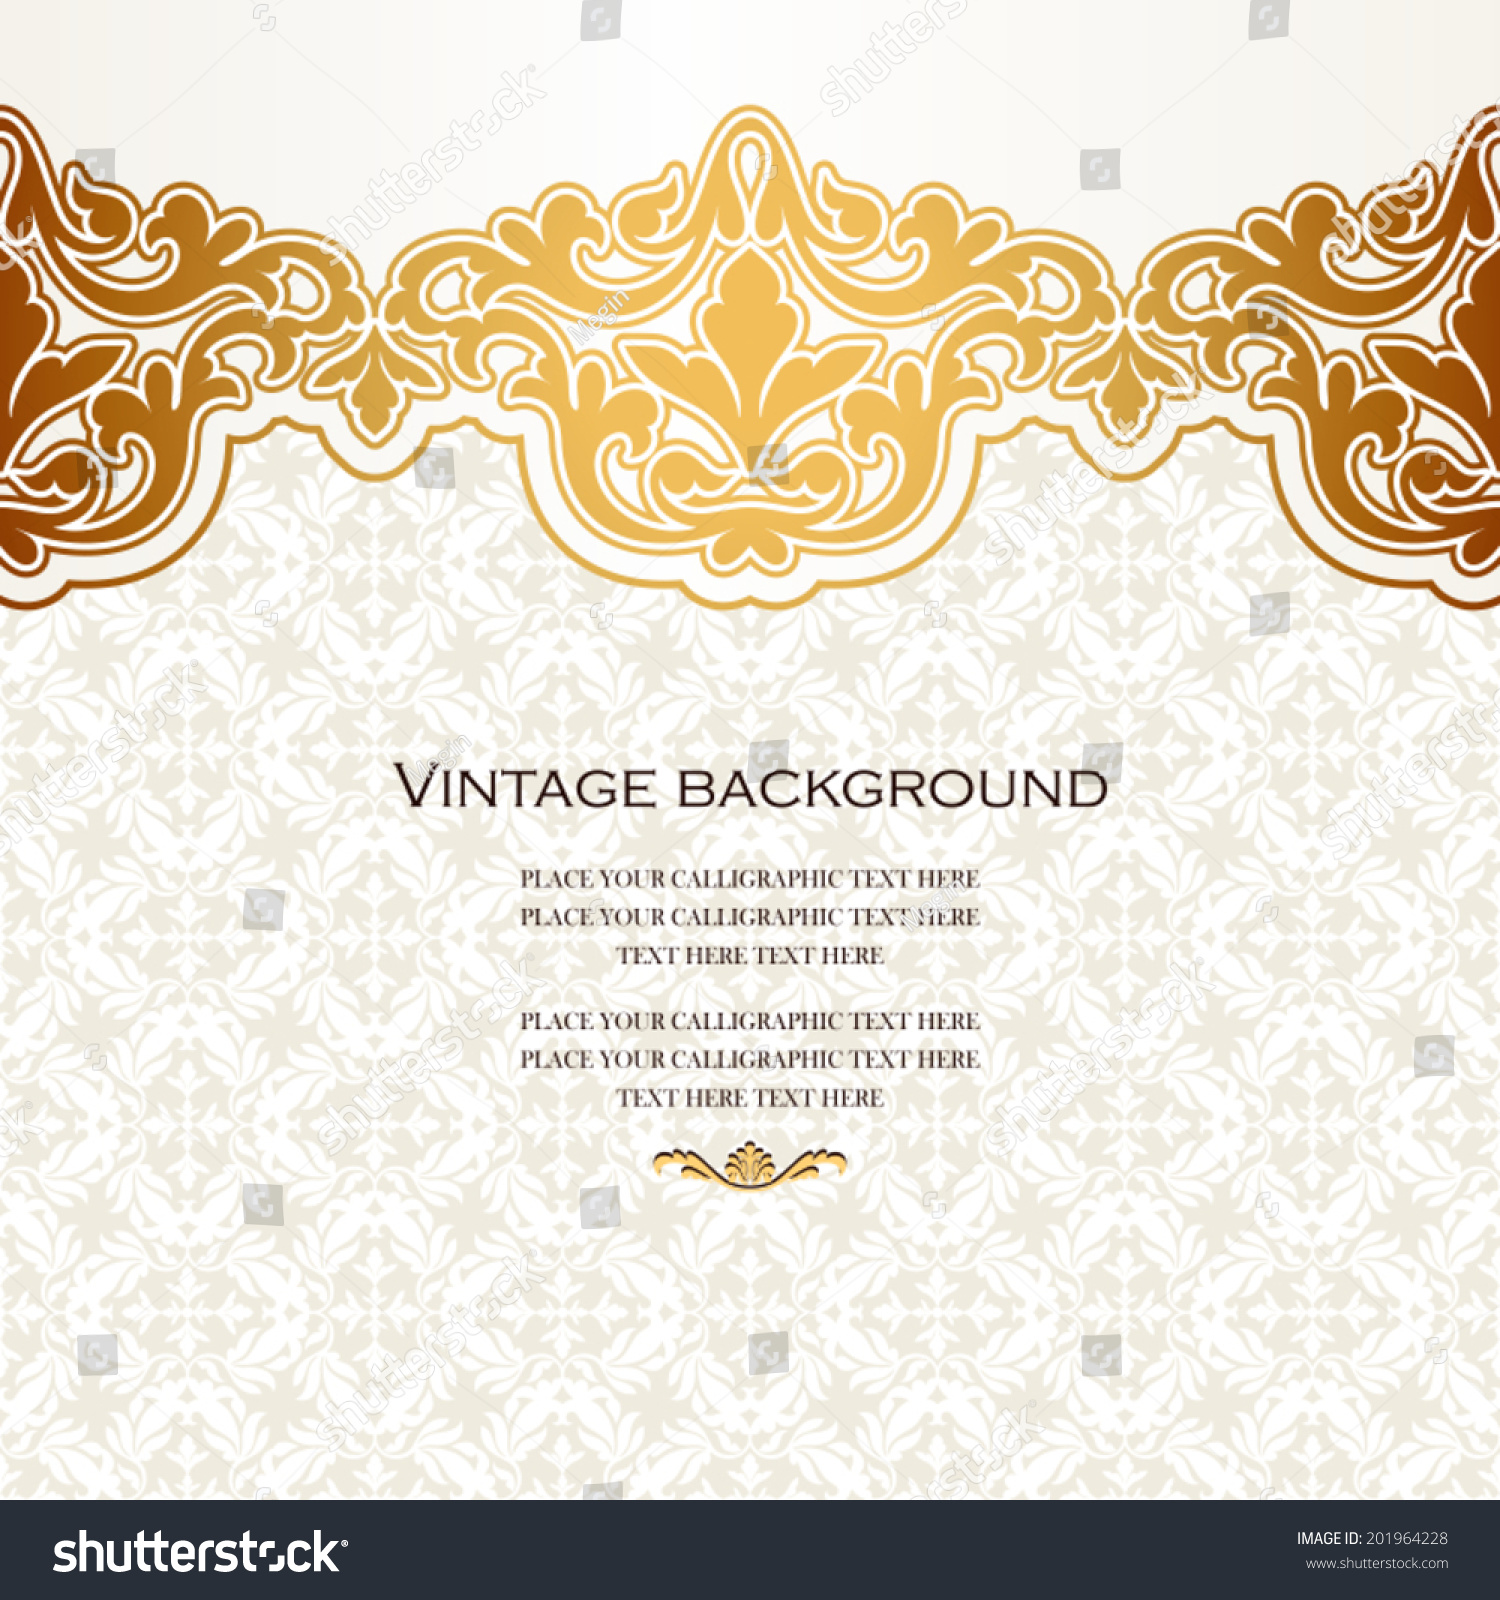 Cheap Packs Of Wedding Invitations as perfect invitations layout